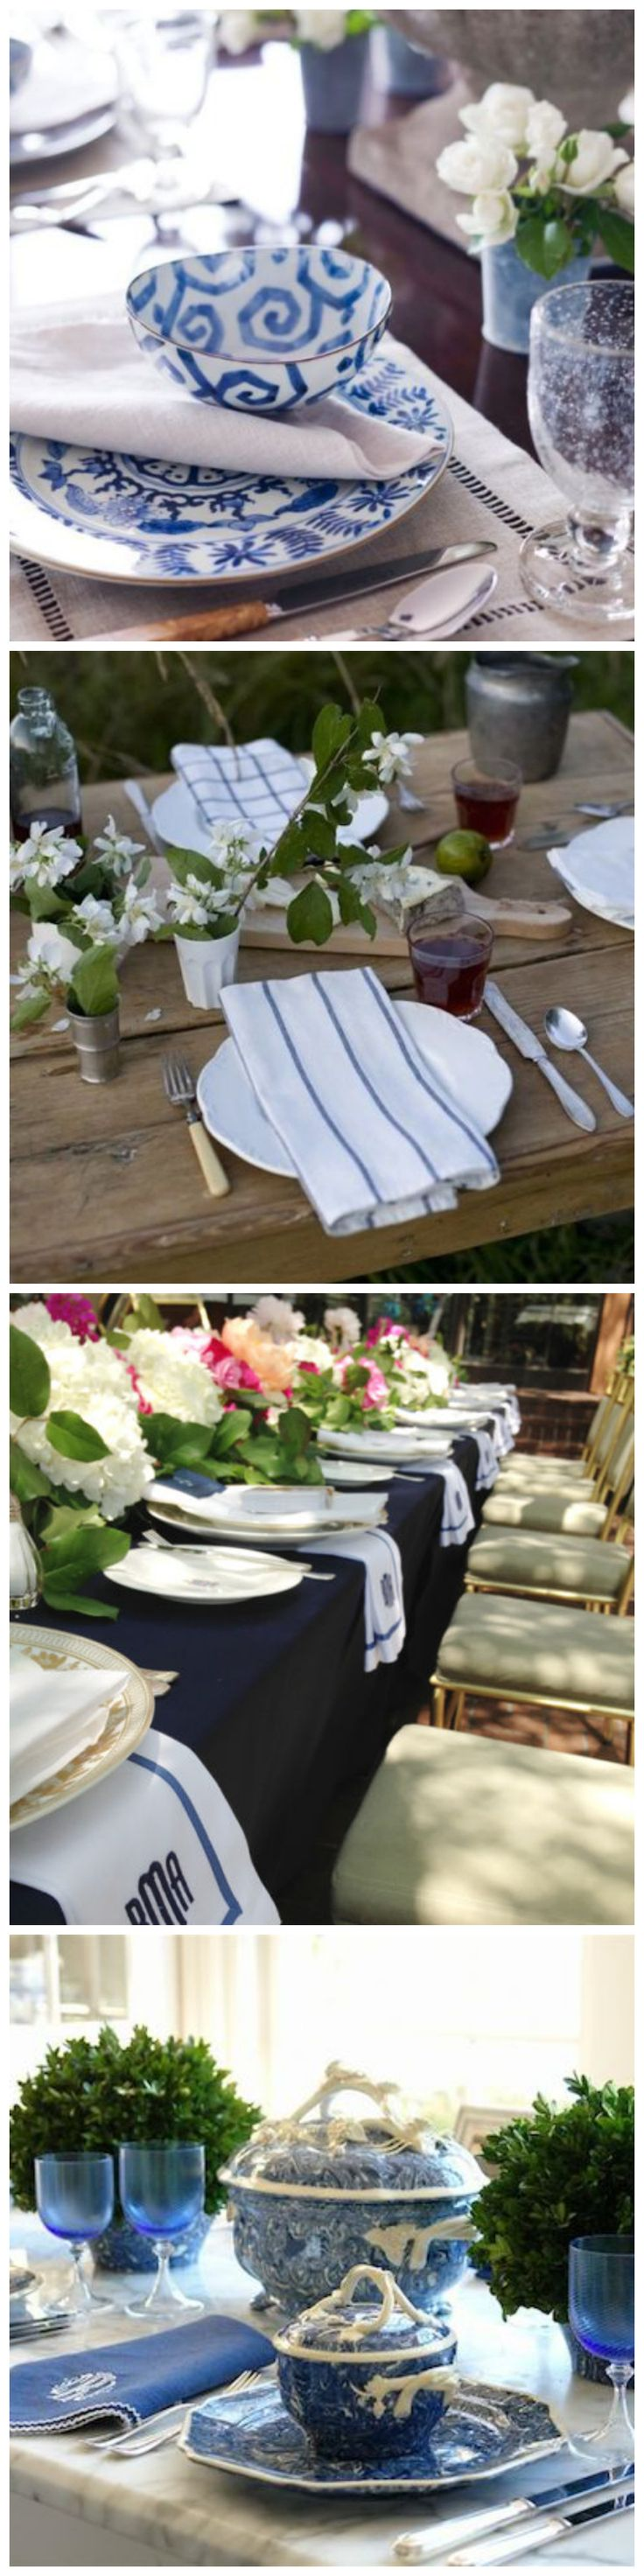 19 Gorgeous Blue and White Tablescapes. White Table ... & 212 best Table Setting Ideas images on Pinterest | Desk layout ...